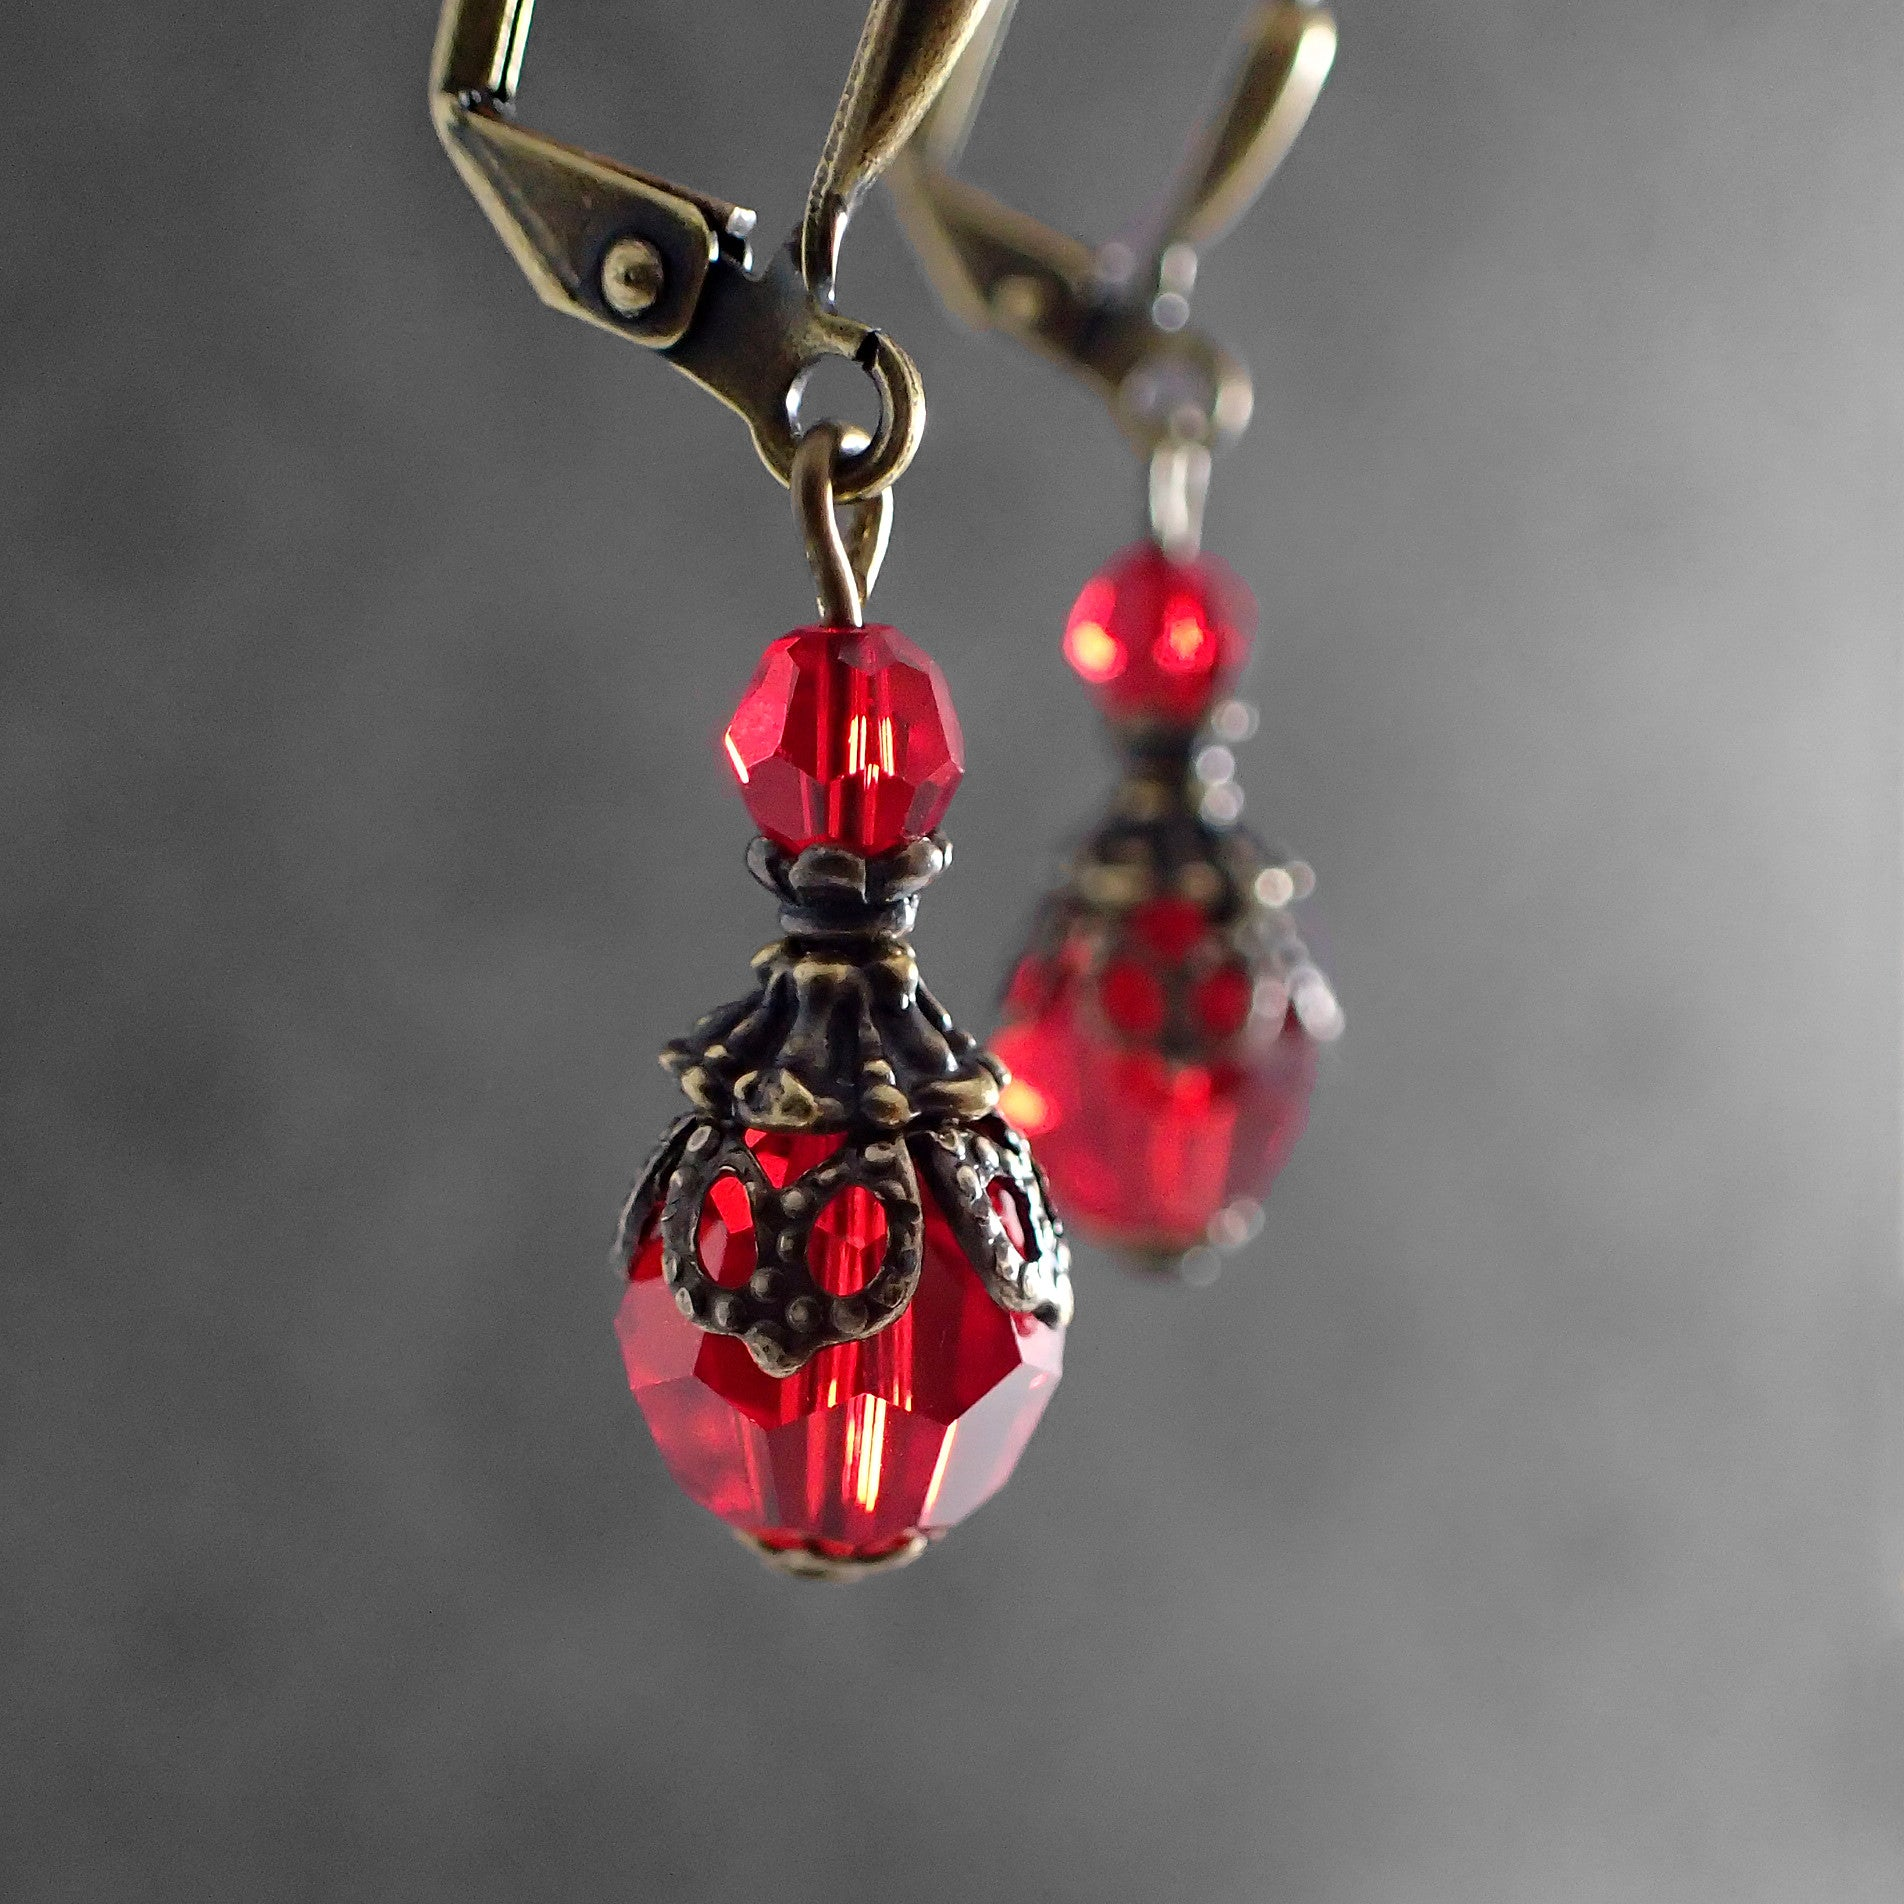 d7db2bb12 Red Victorian Style Swarovski Crystal Earrings - Ardent Hearts ...